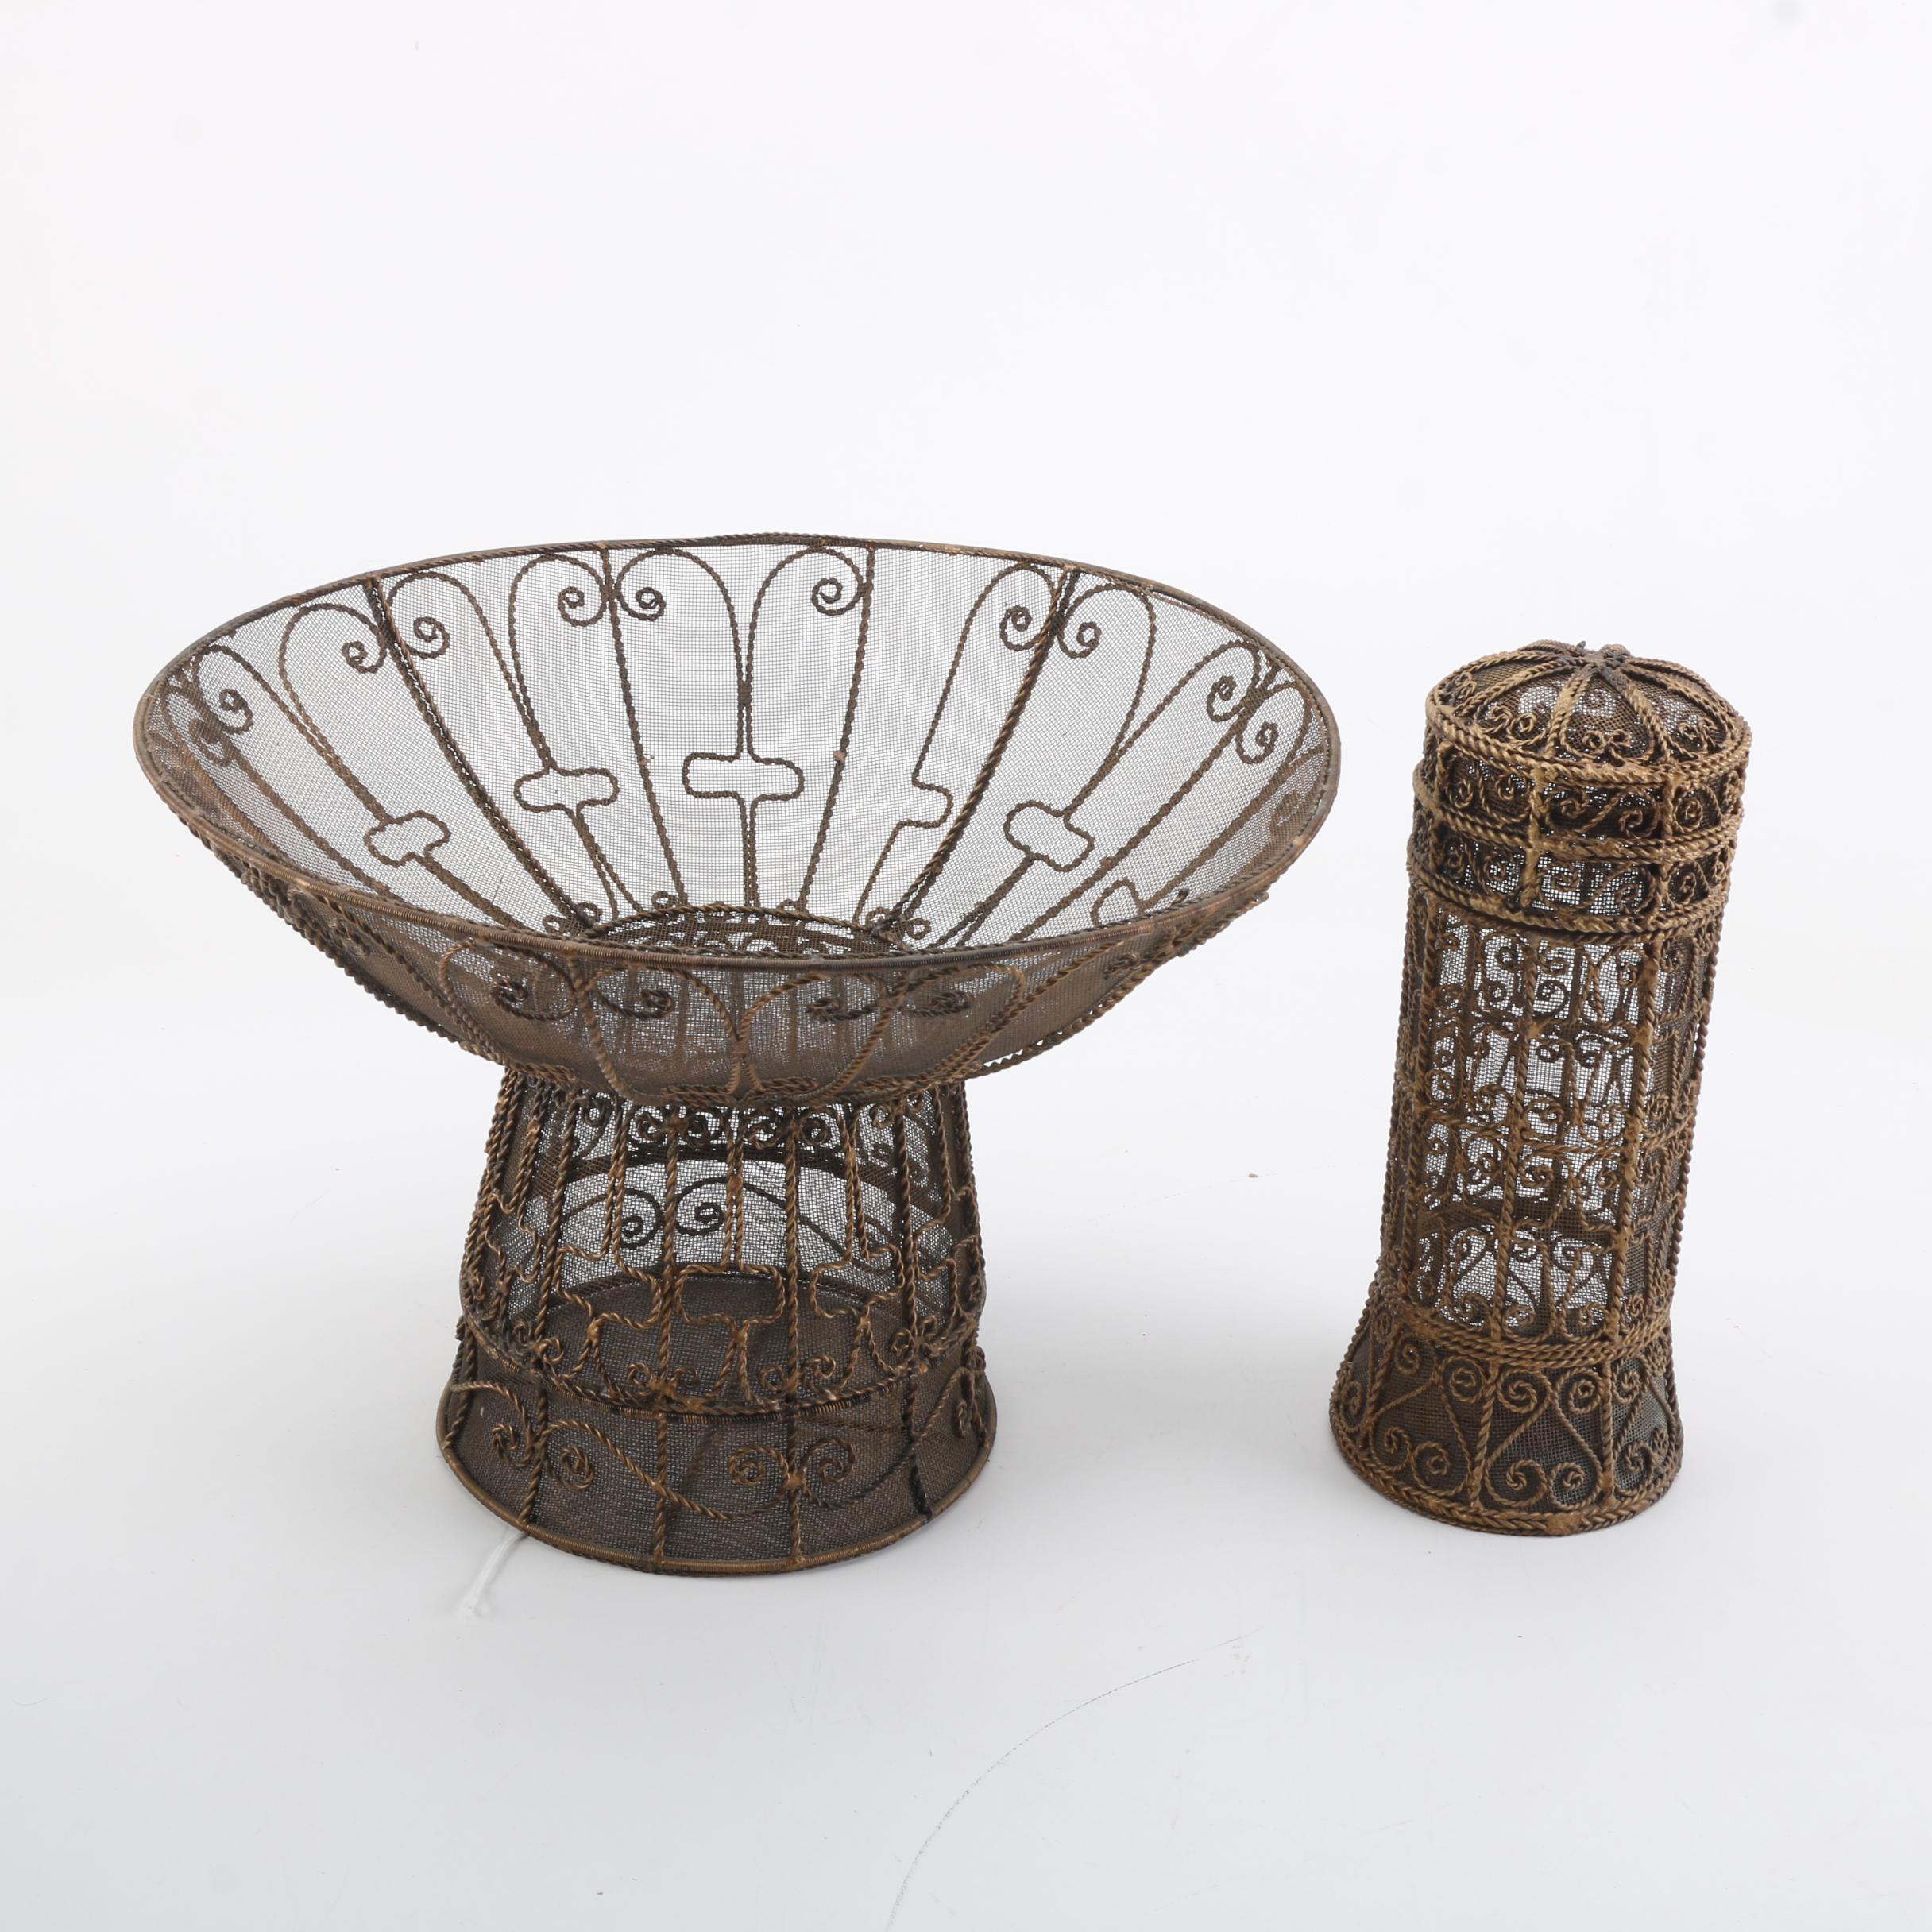 Coiled Wire Basket and Canister